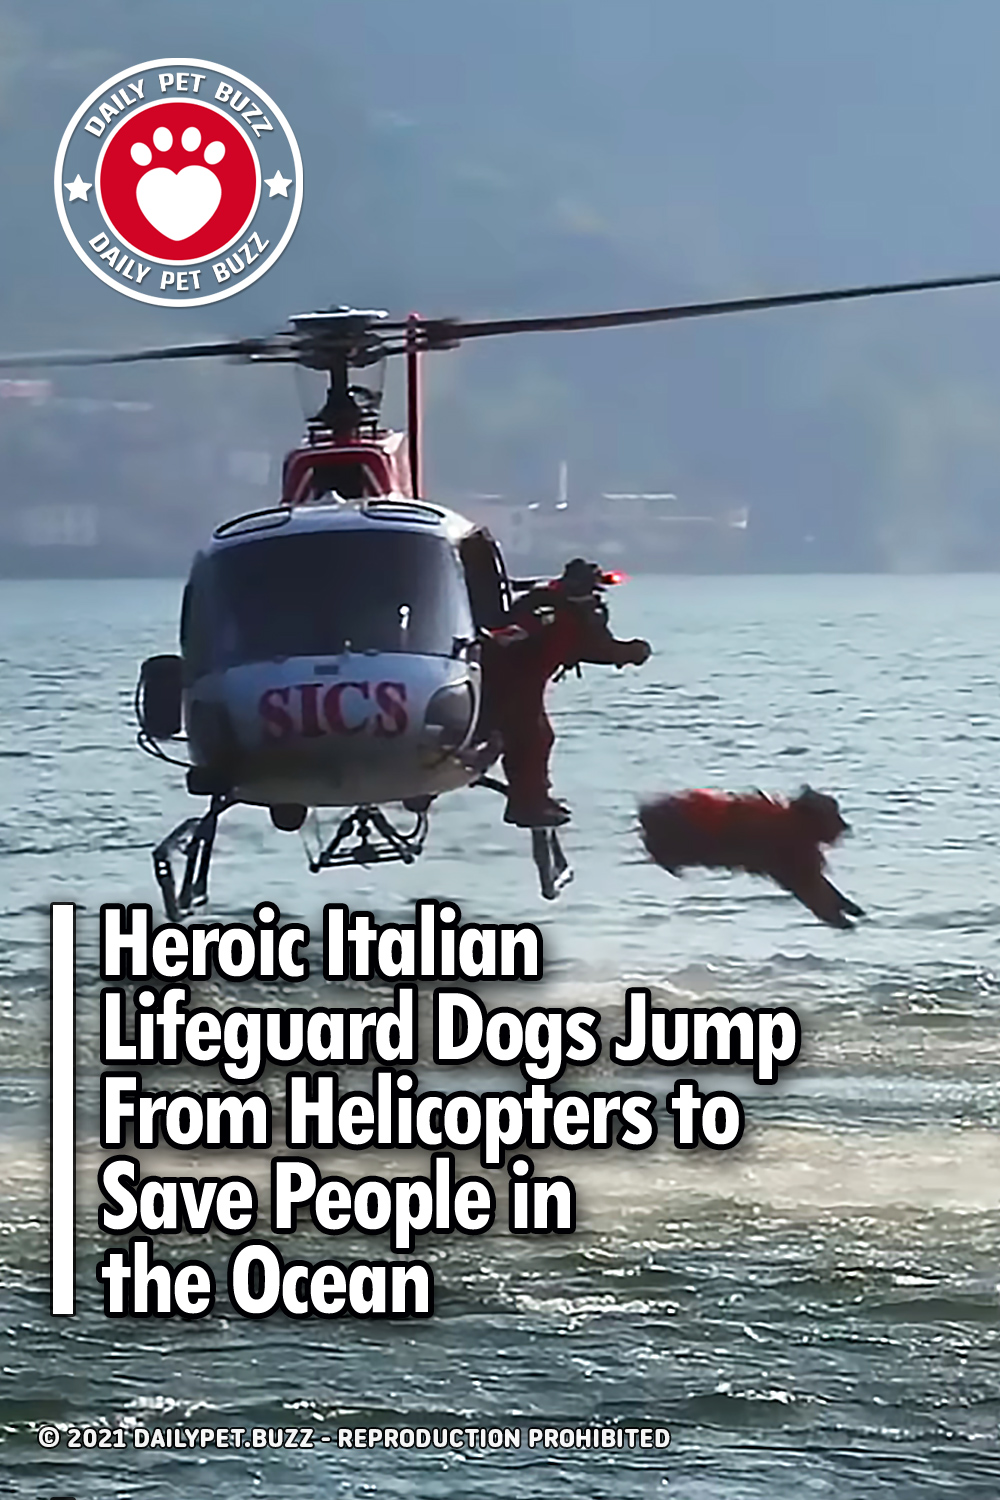 Heroic Italian Lifeguard Dogs Jump From Helicopters to Save People in the Ocean